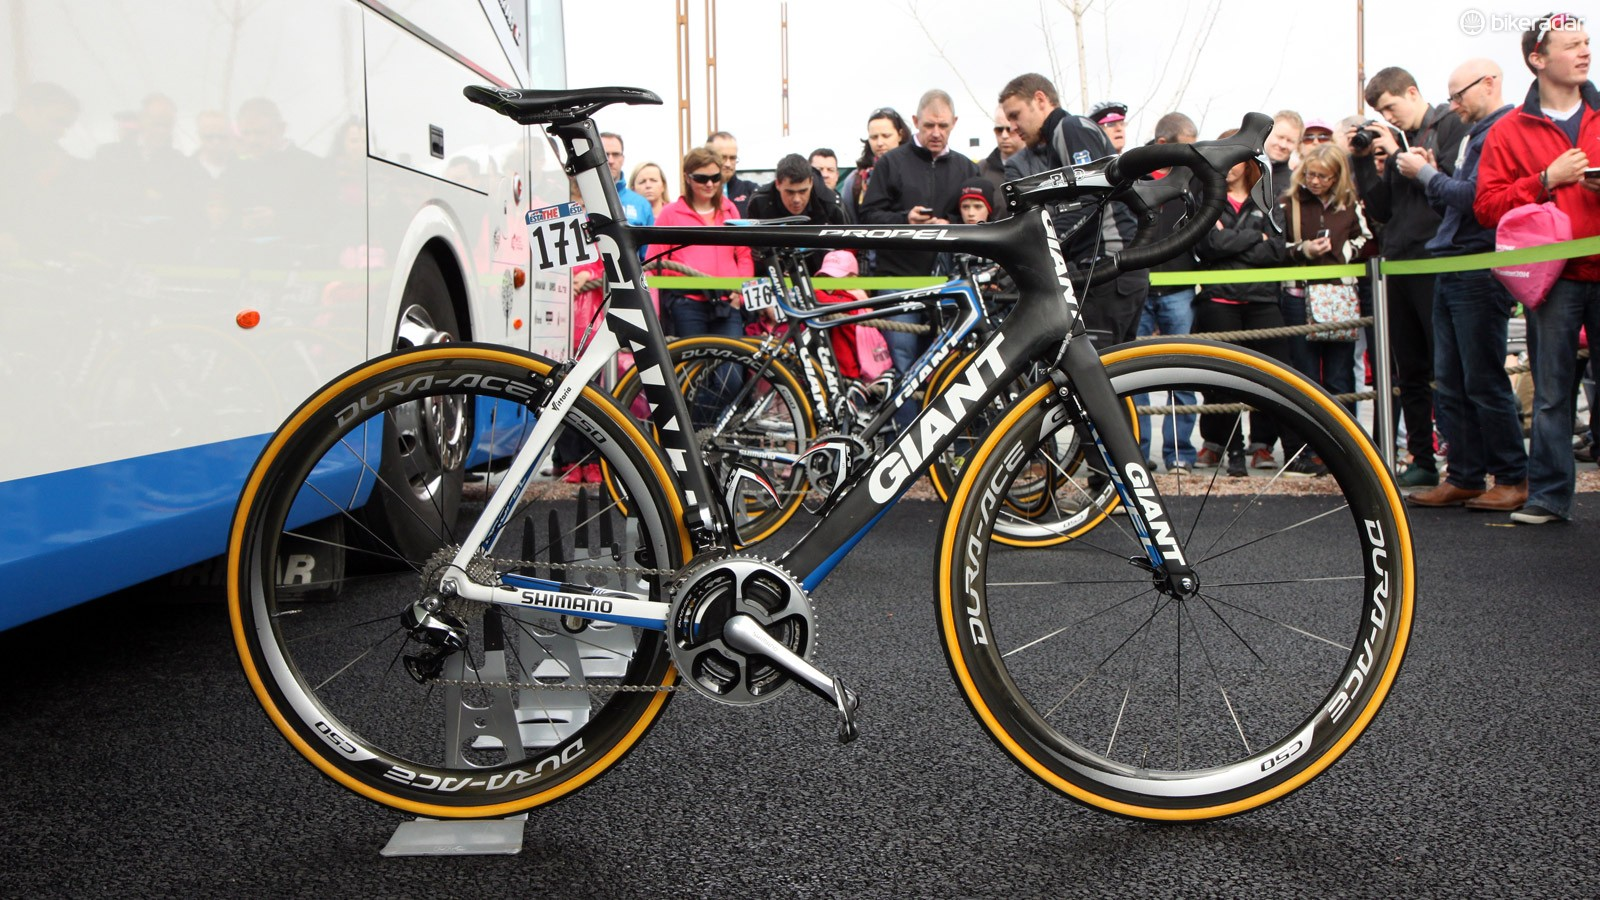 Marcel Kittel (Giant-Shimano) is hoping for a few more stage wins aboard his trusty Giant Propel Advanced